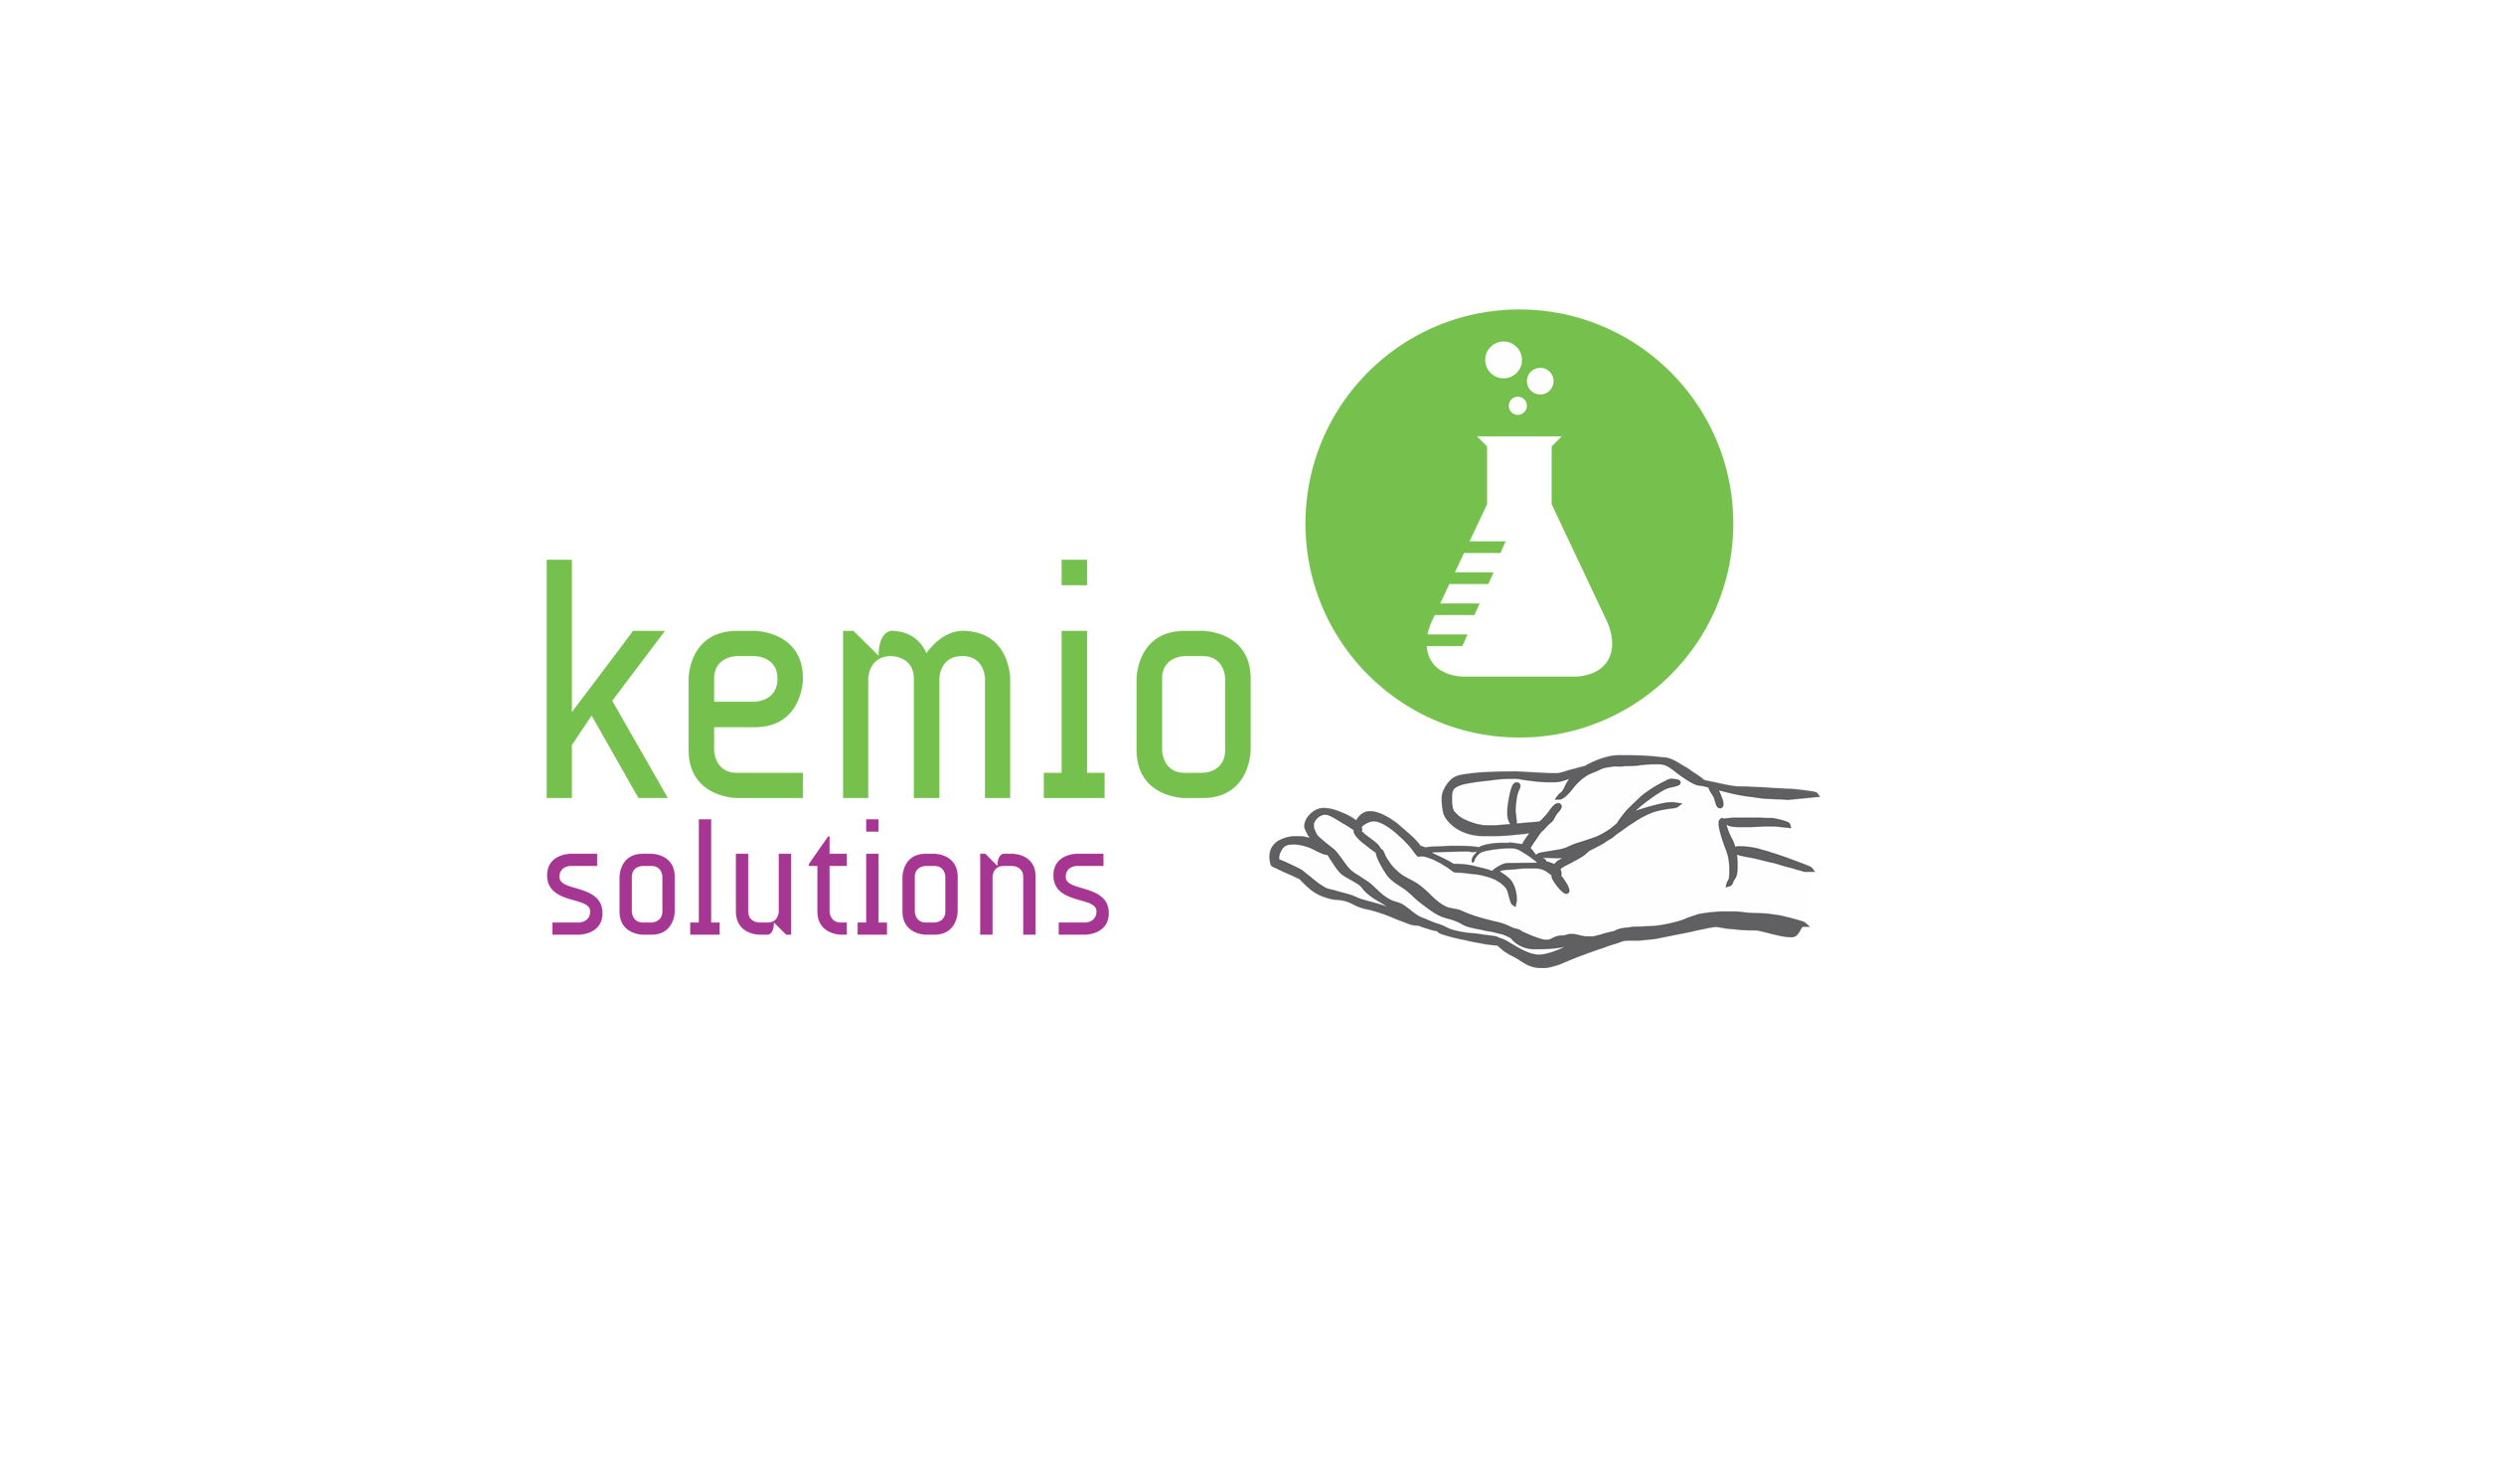 contract research organization in india – Kemio Solutions